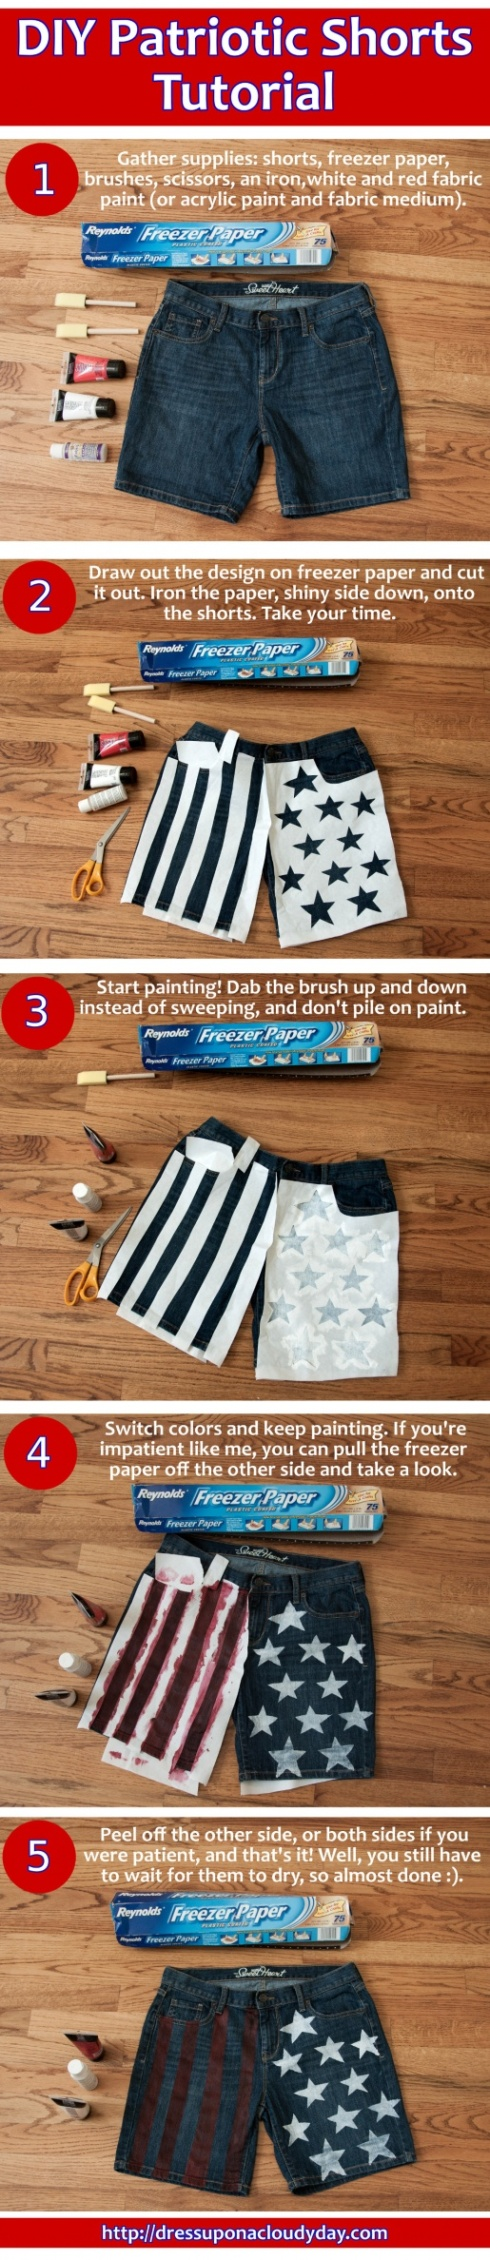 DIY Patriotic Shorts Tutorial